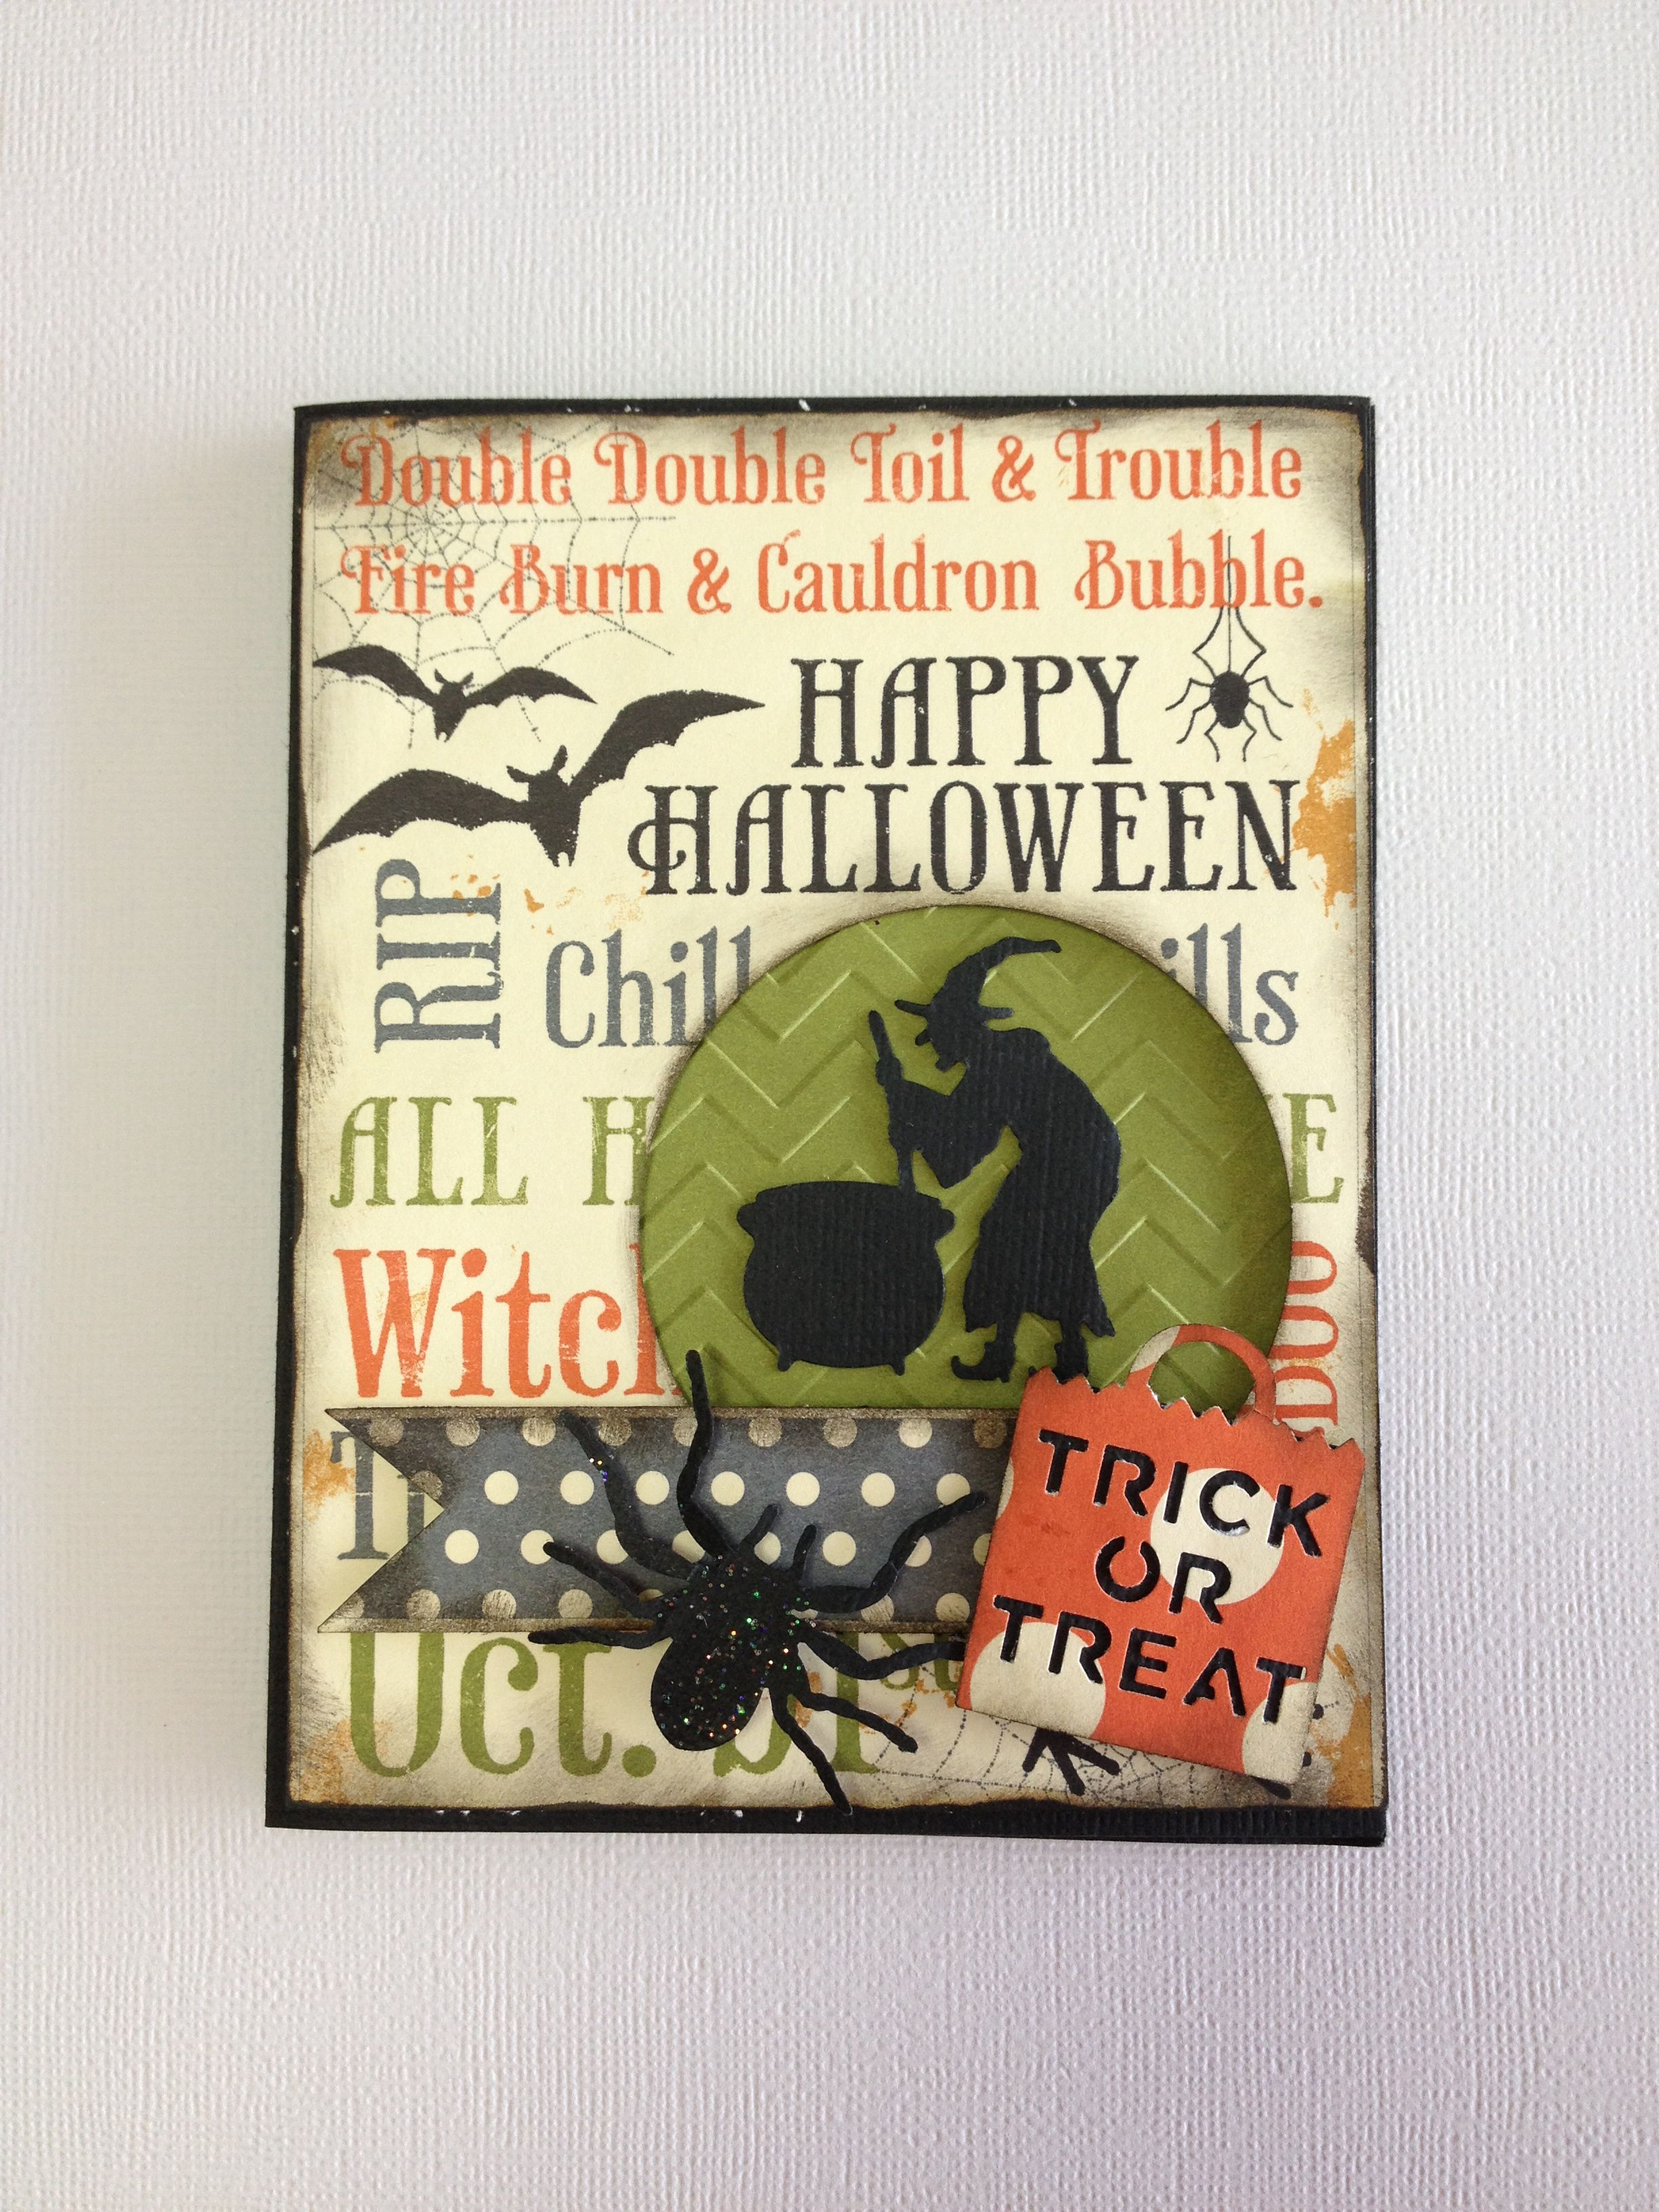 Handmade Halloween Witch Card by Rose Marie Jusino